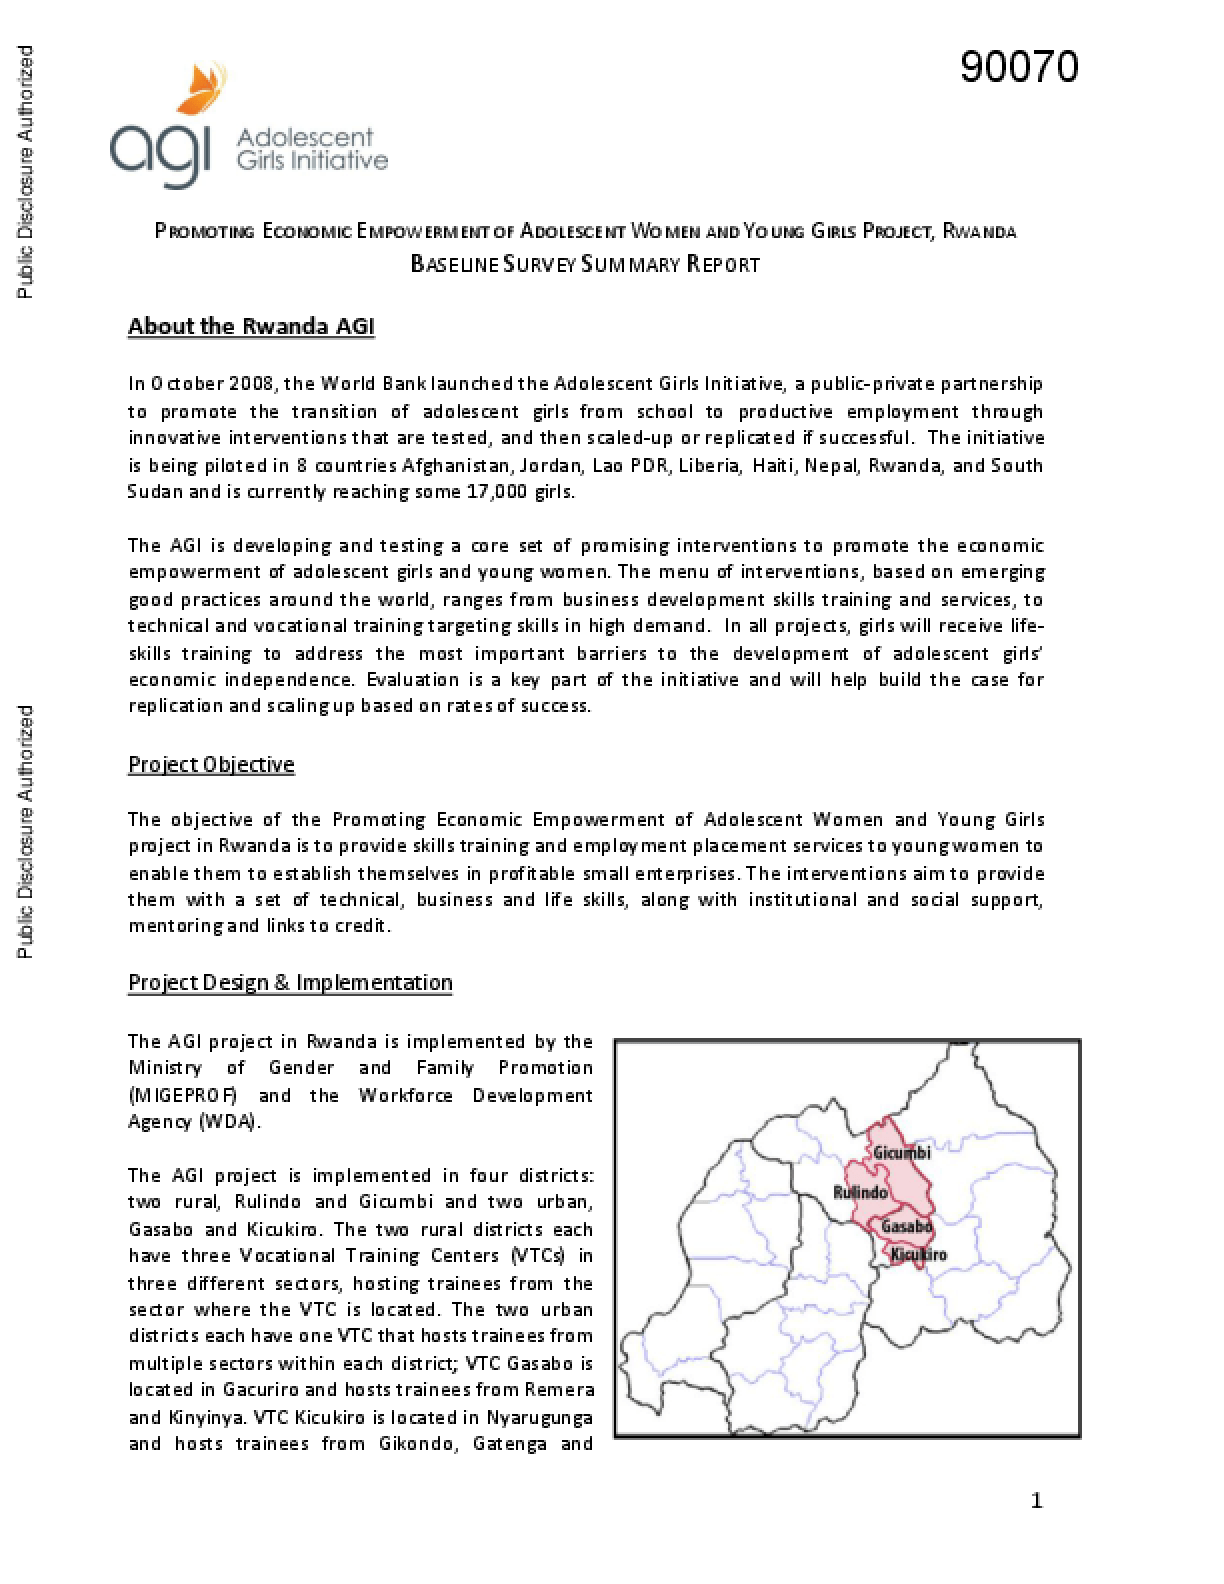 Promoting Economic Empowerment of Adolescent Women and Young Girl's Project, Rwanda: Baseline Survey Summary Report